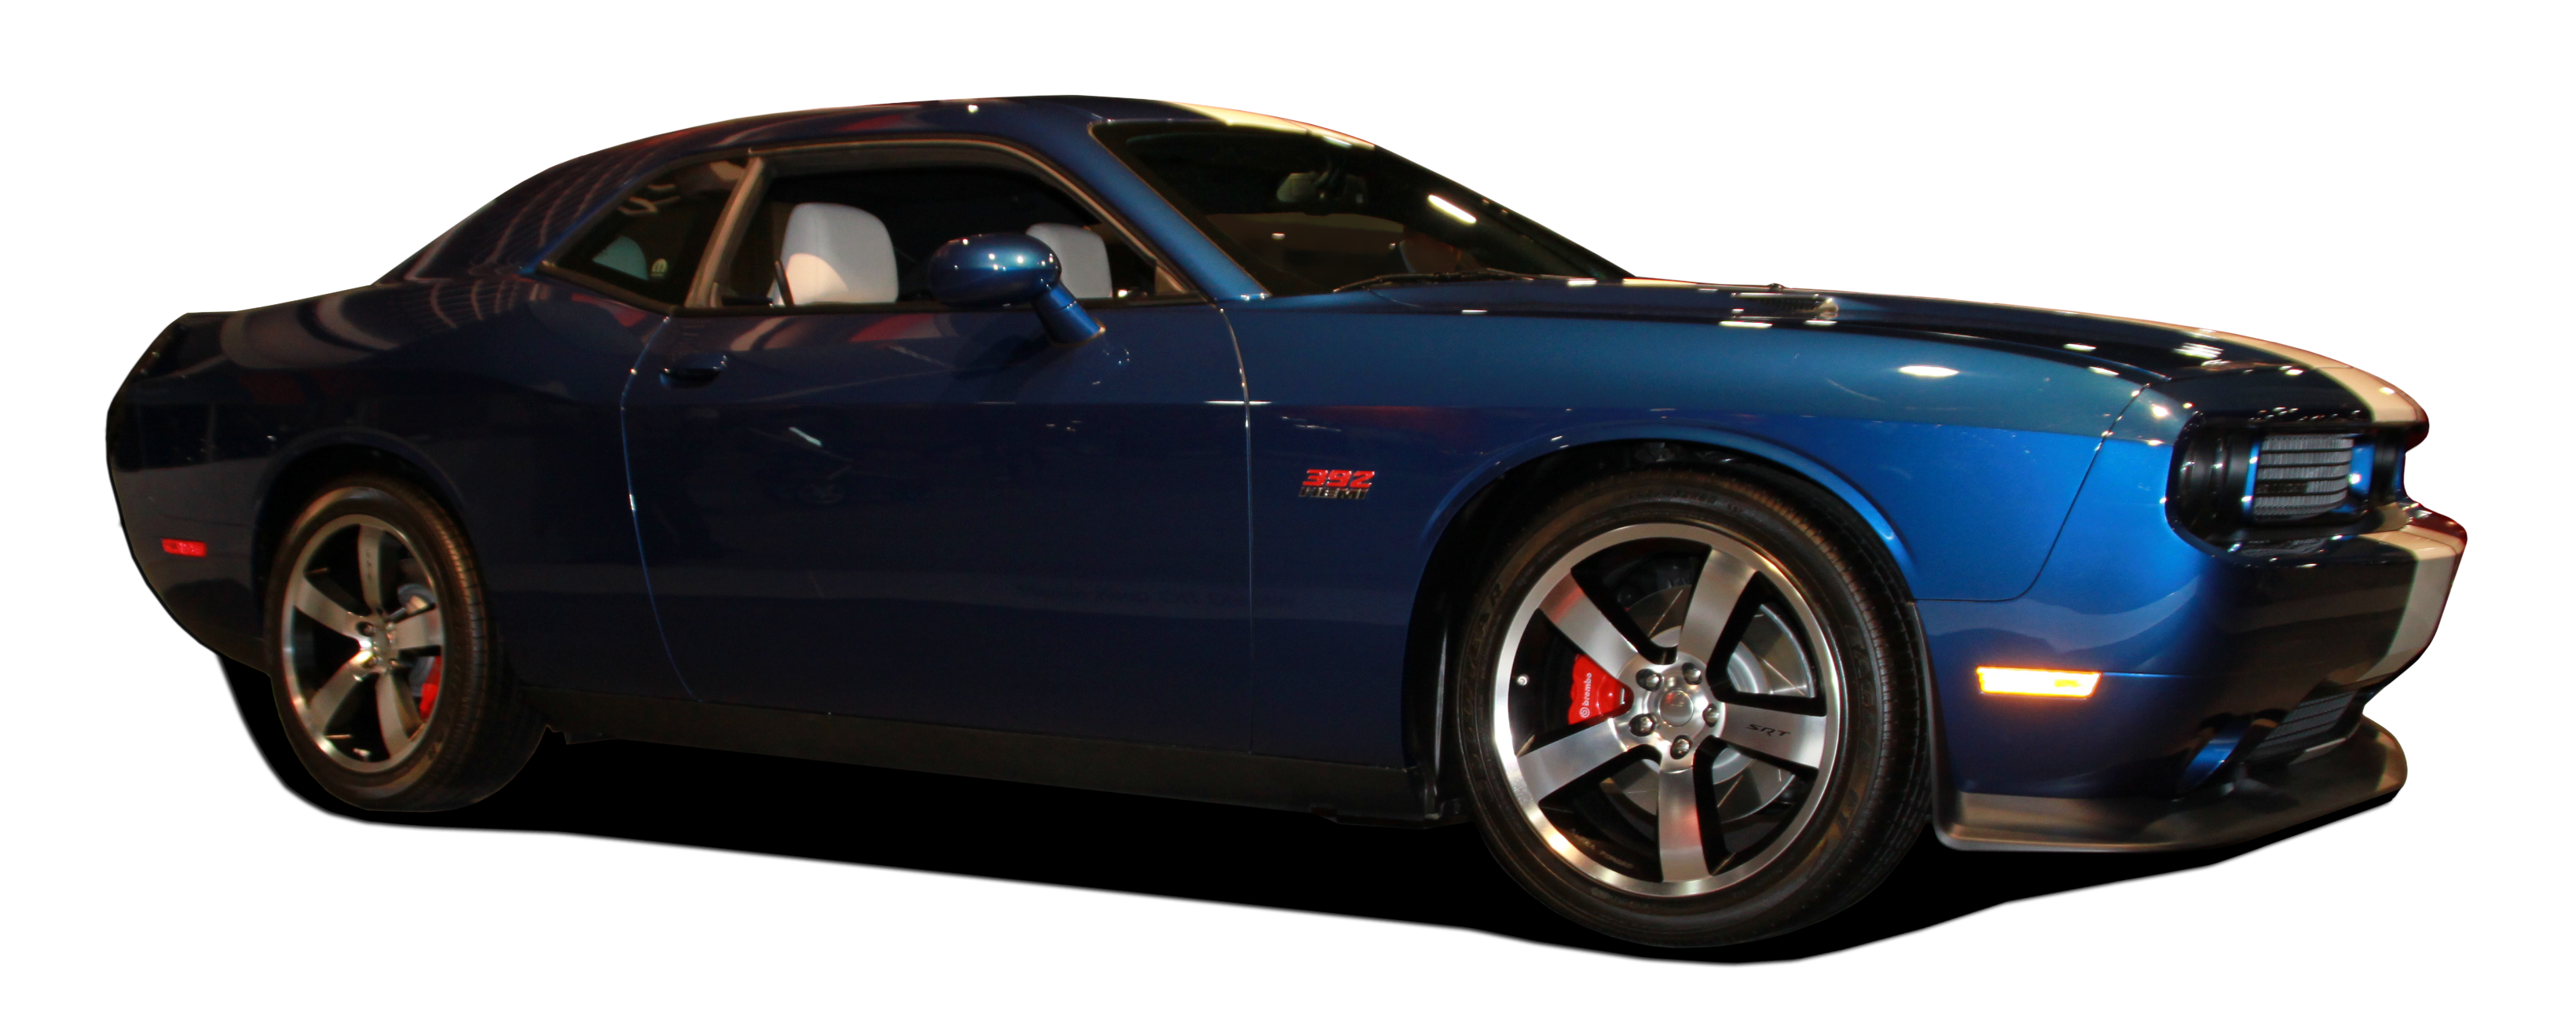 2011 Dodge Challenger Srt 8 392